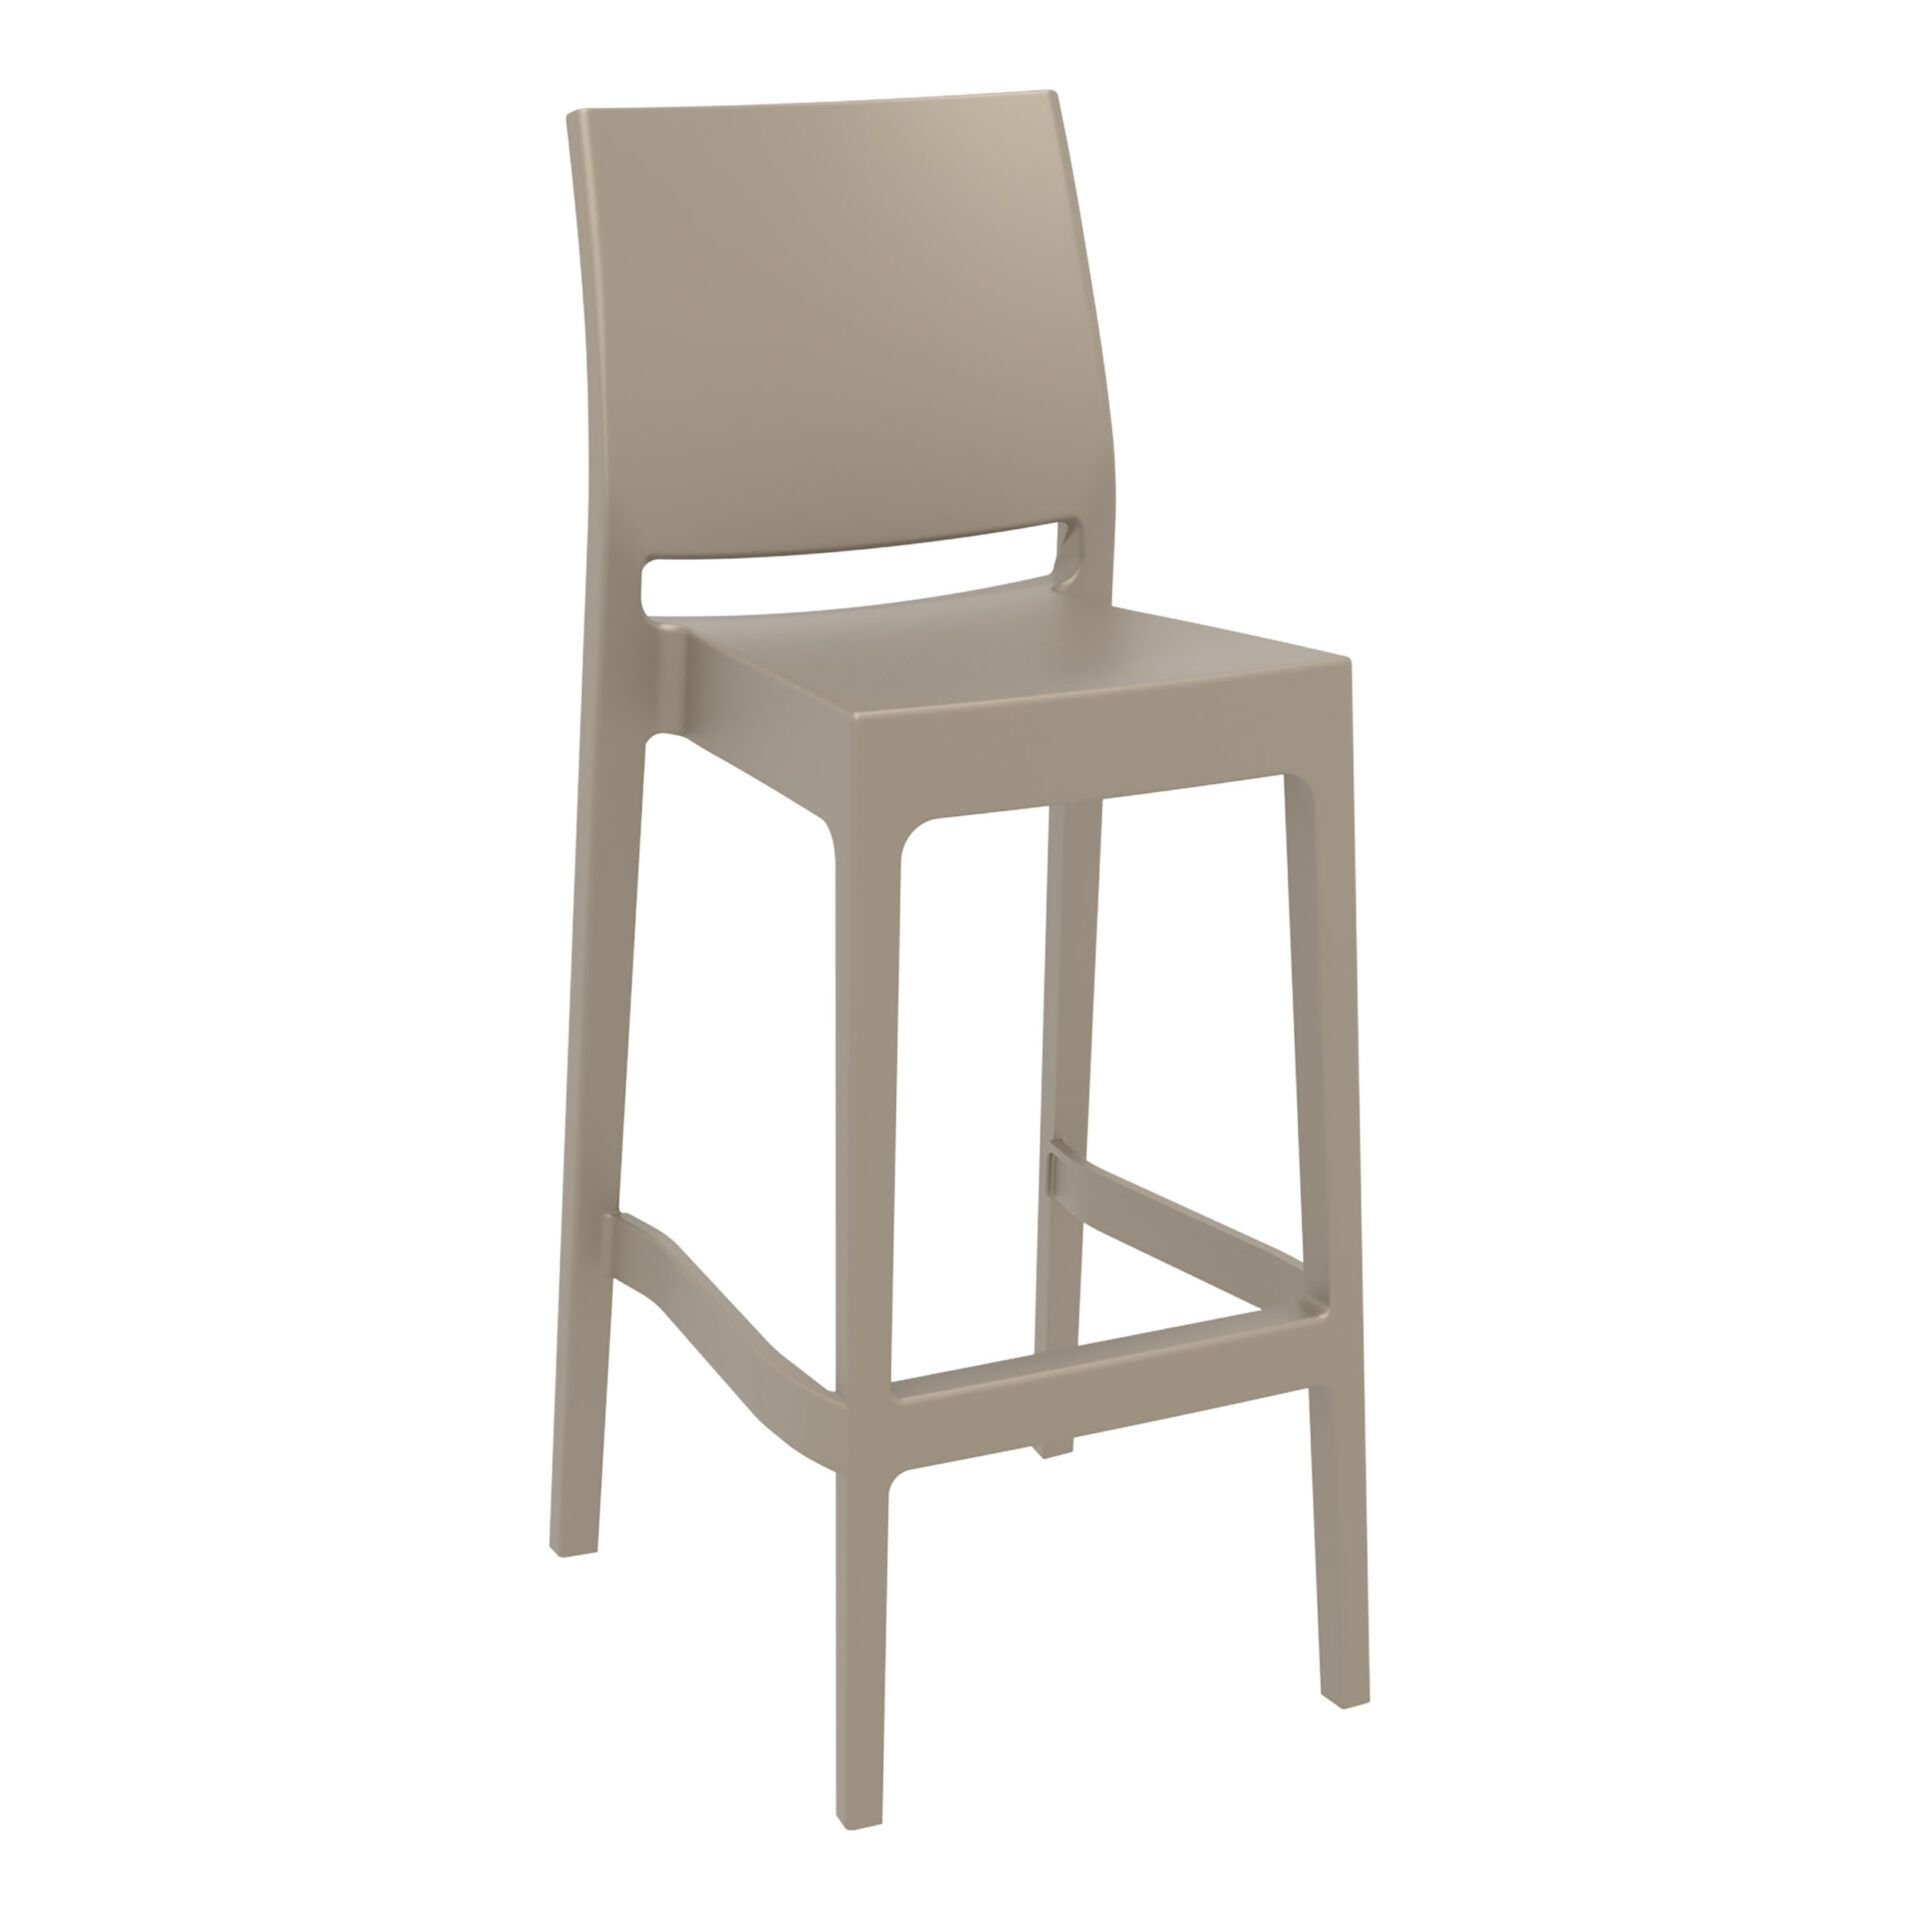 outdoor bar maya barstool 75 taupe front side